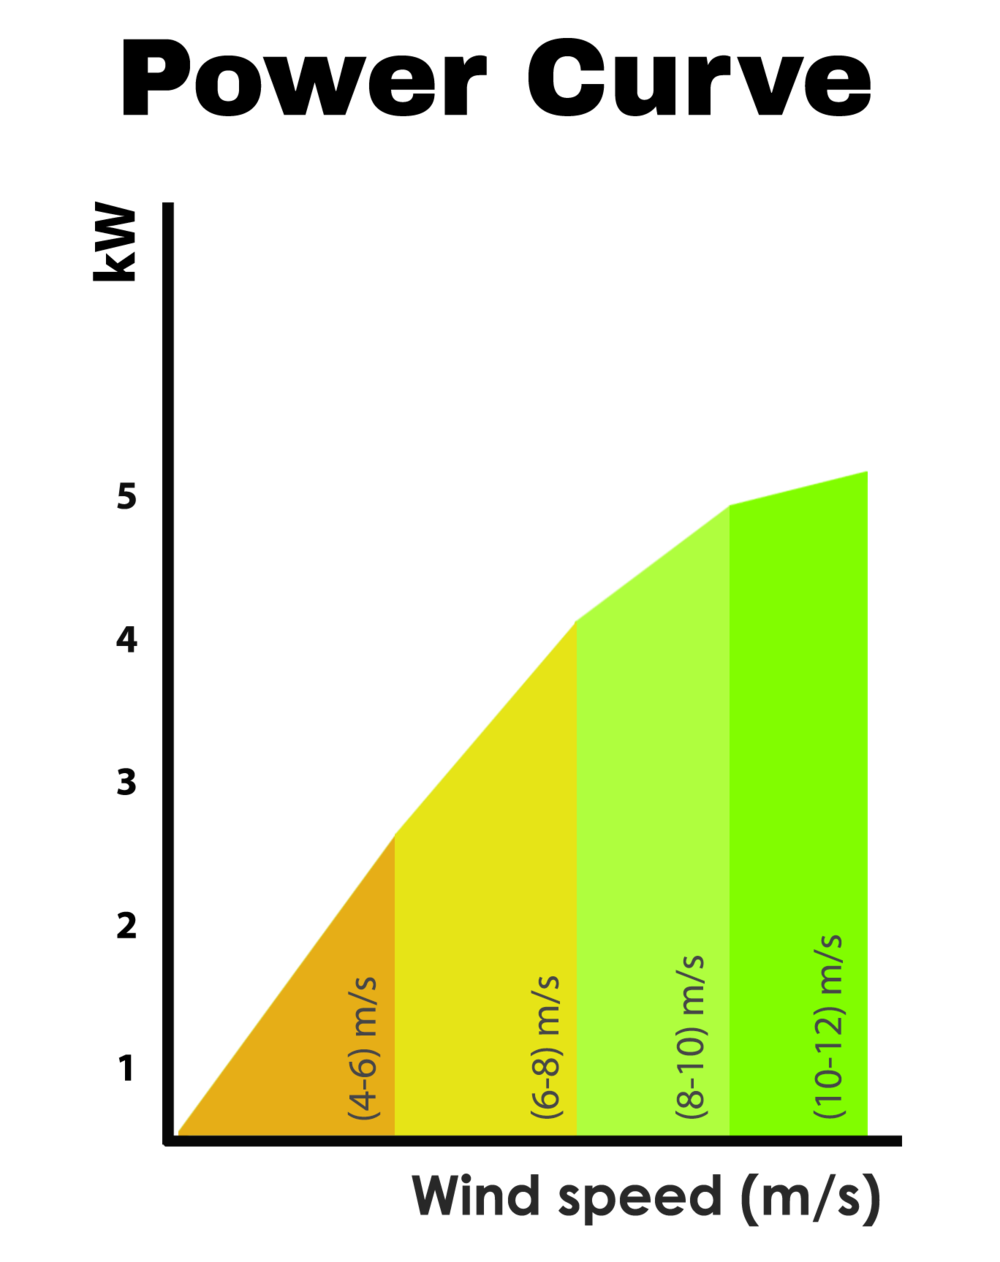 Power curve1.png